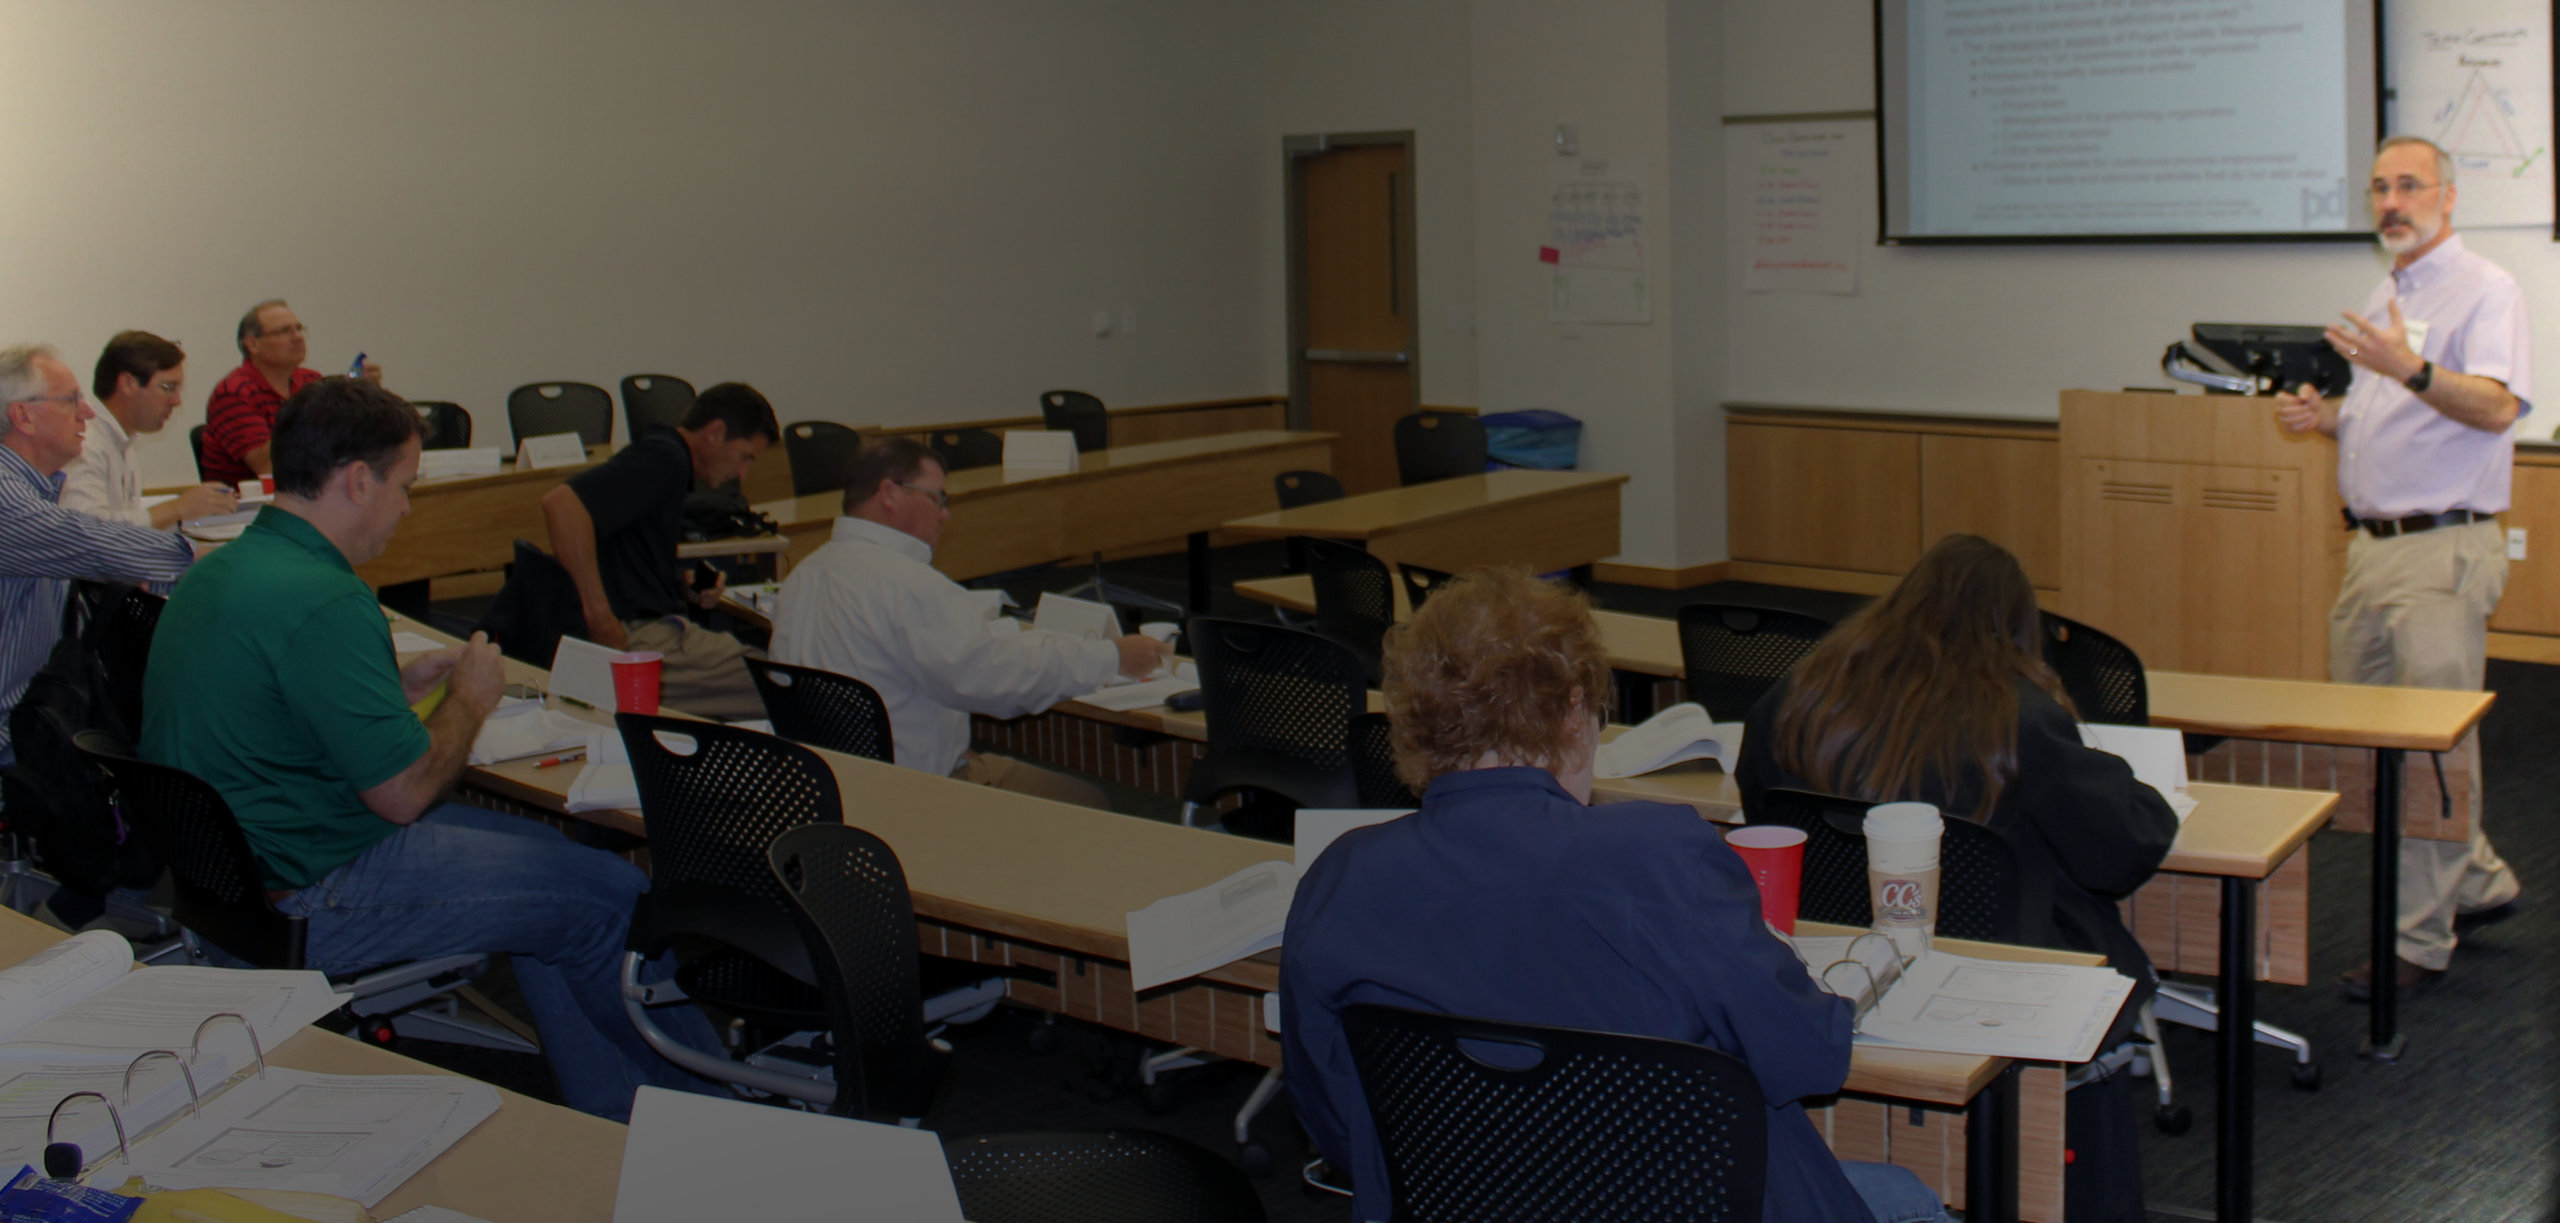 Doug Boebinger Teaching Project Management Training Course